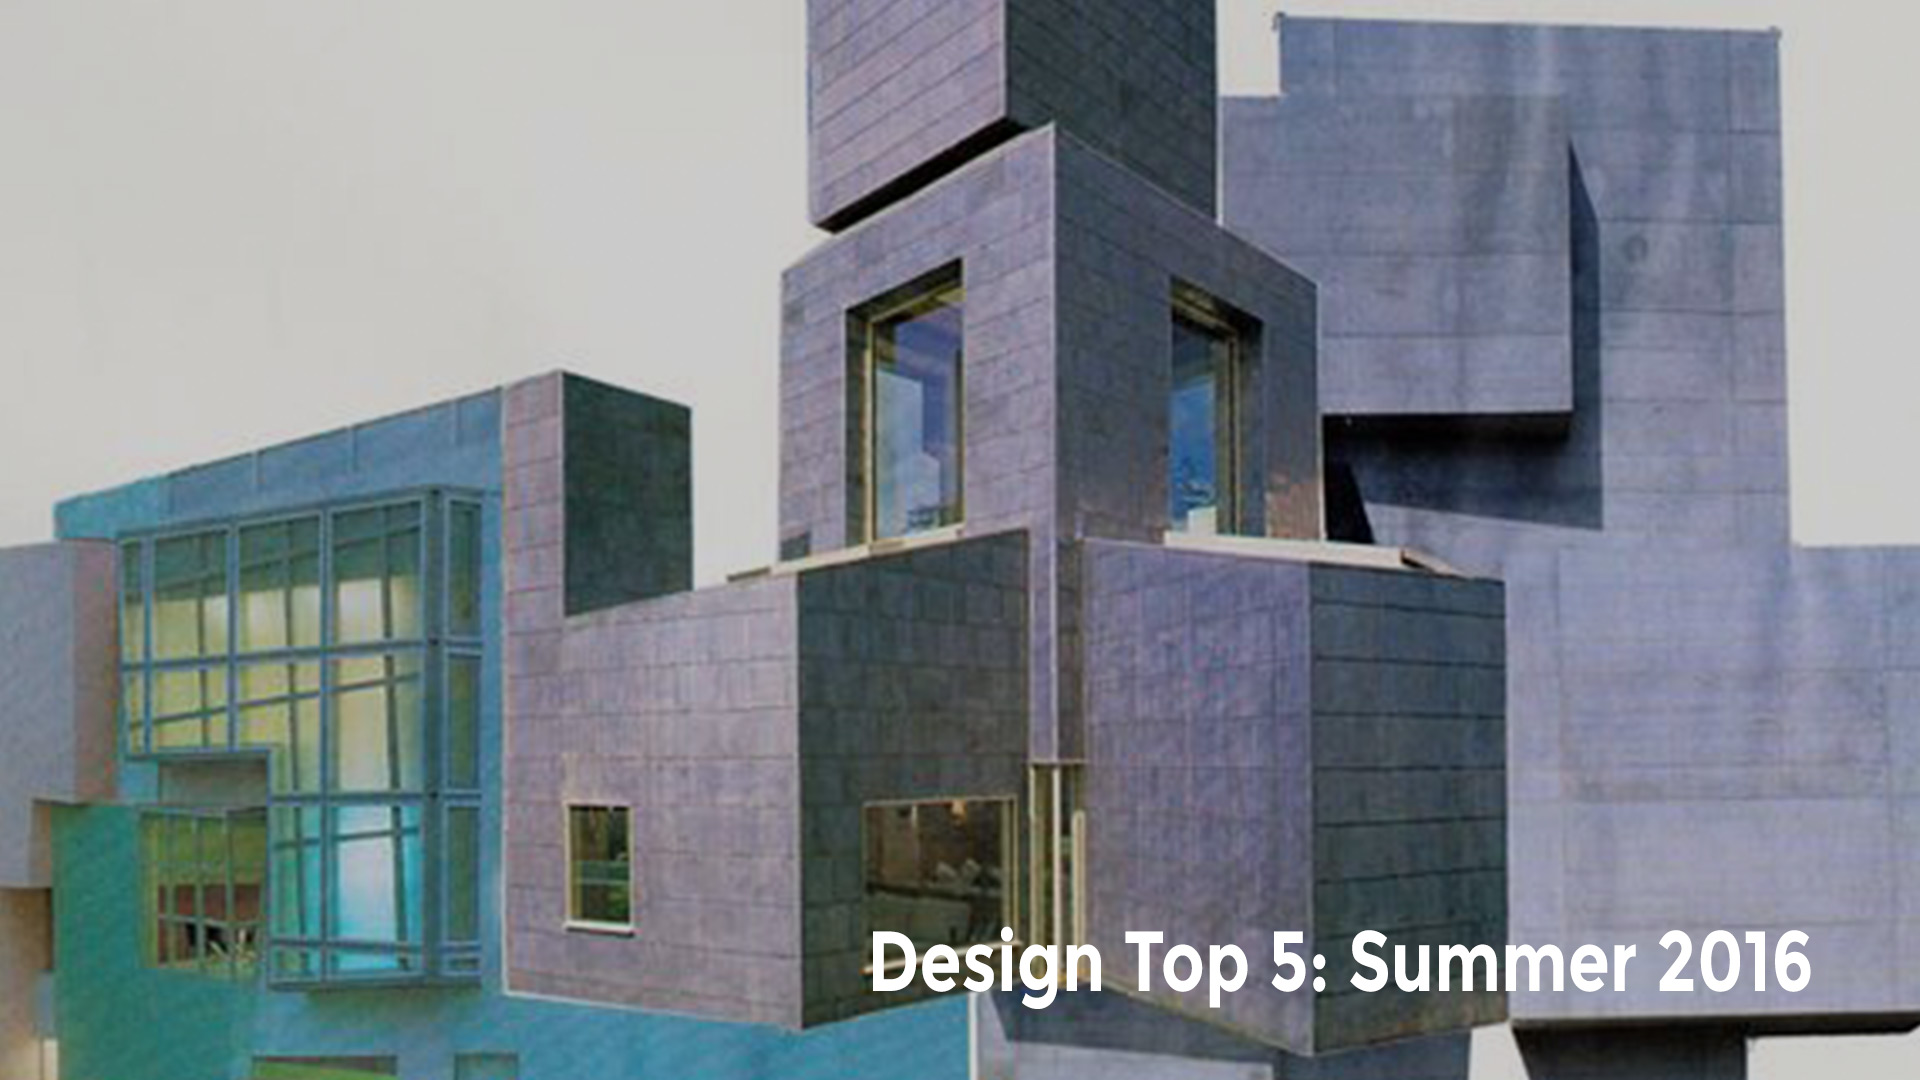 Design-Top-5-Summer-2016-Slide